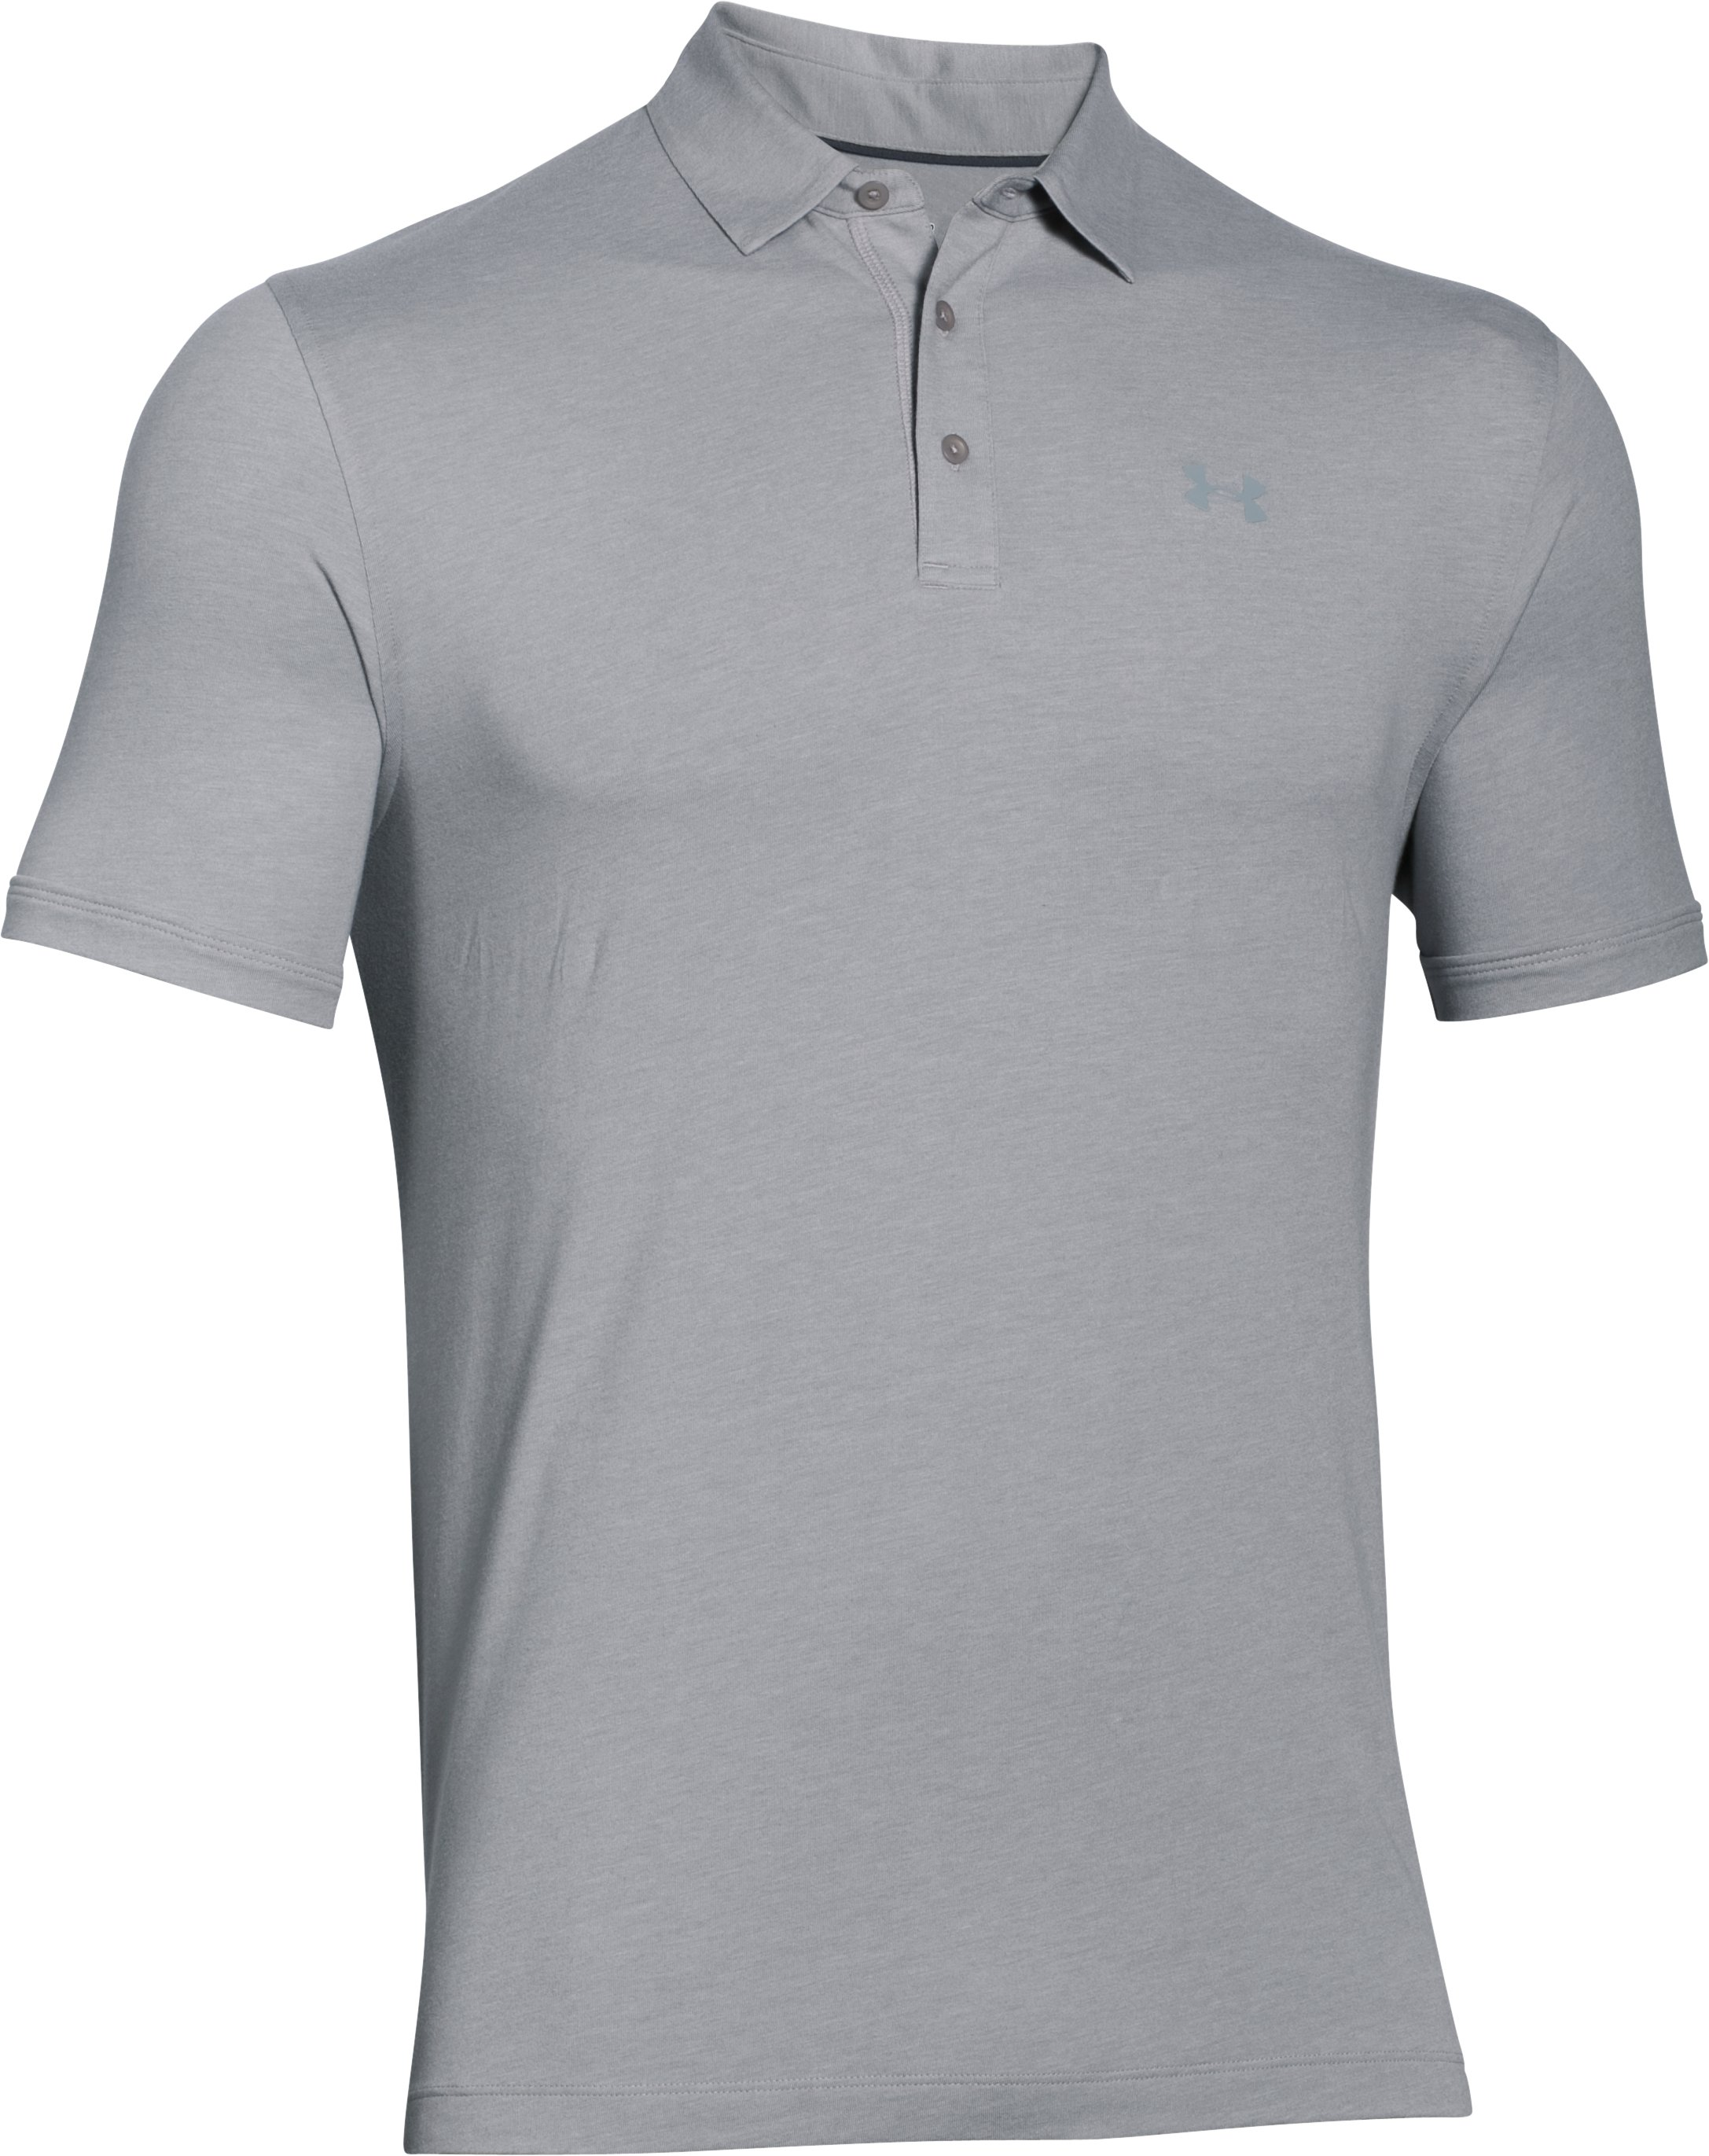 Men's Charged Cotton® Scramble Polo, True Gray Heather